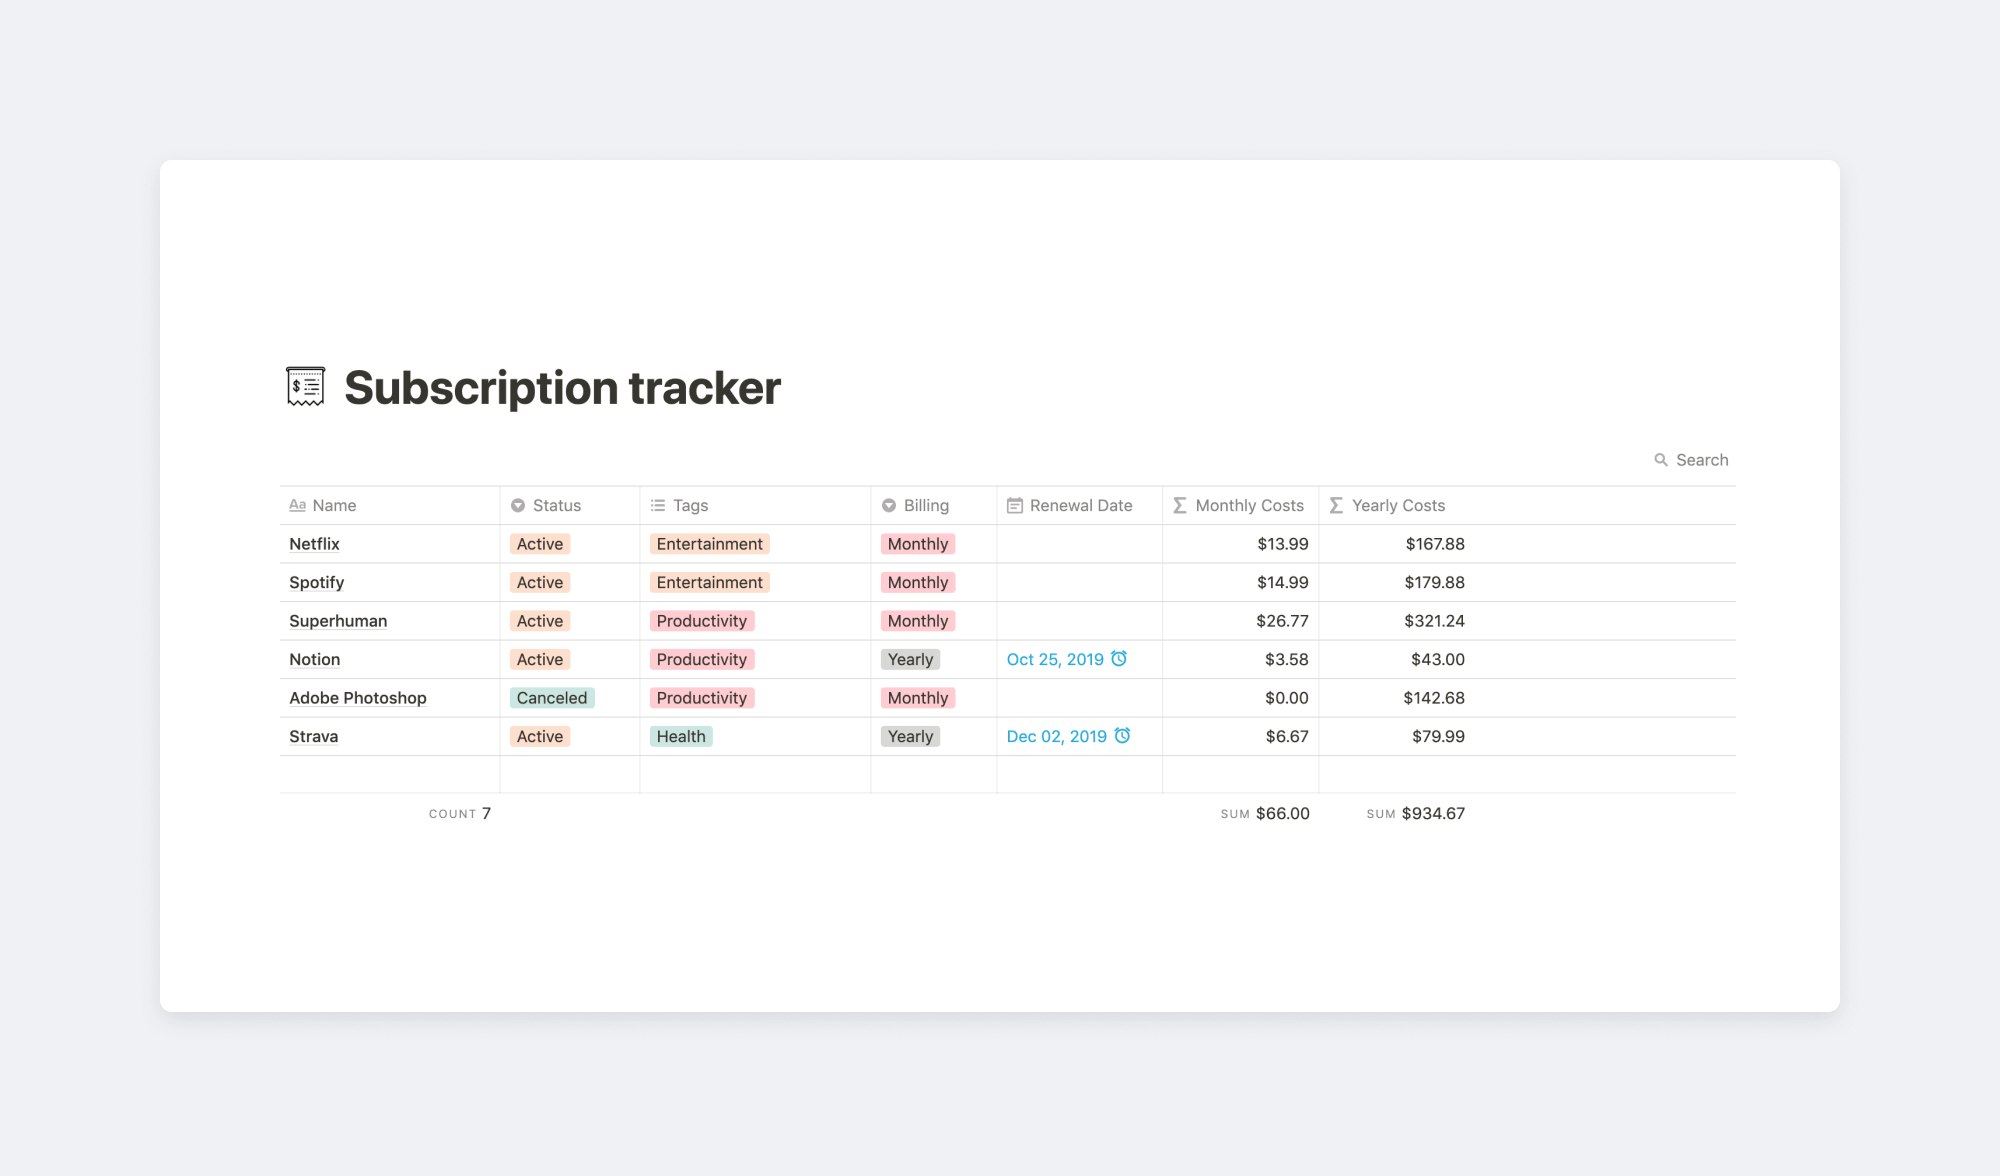 Subscription tracker